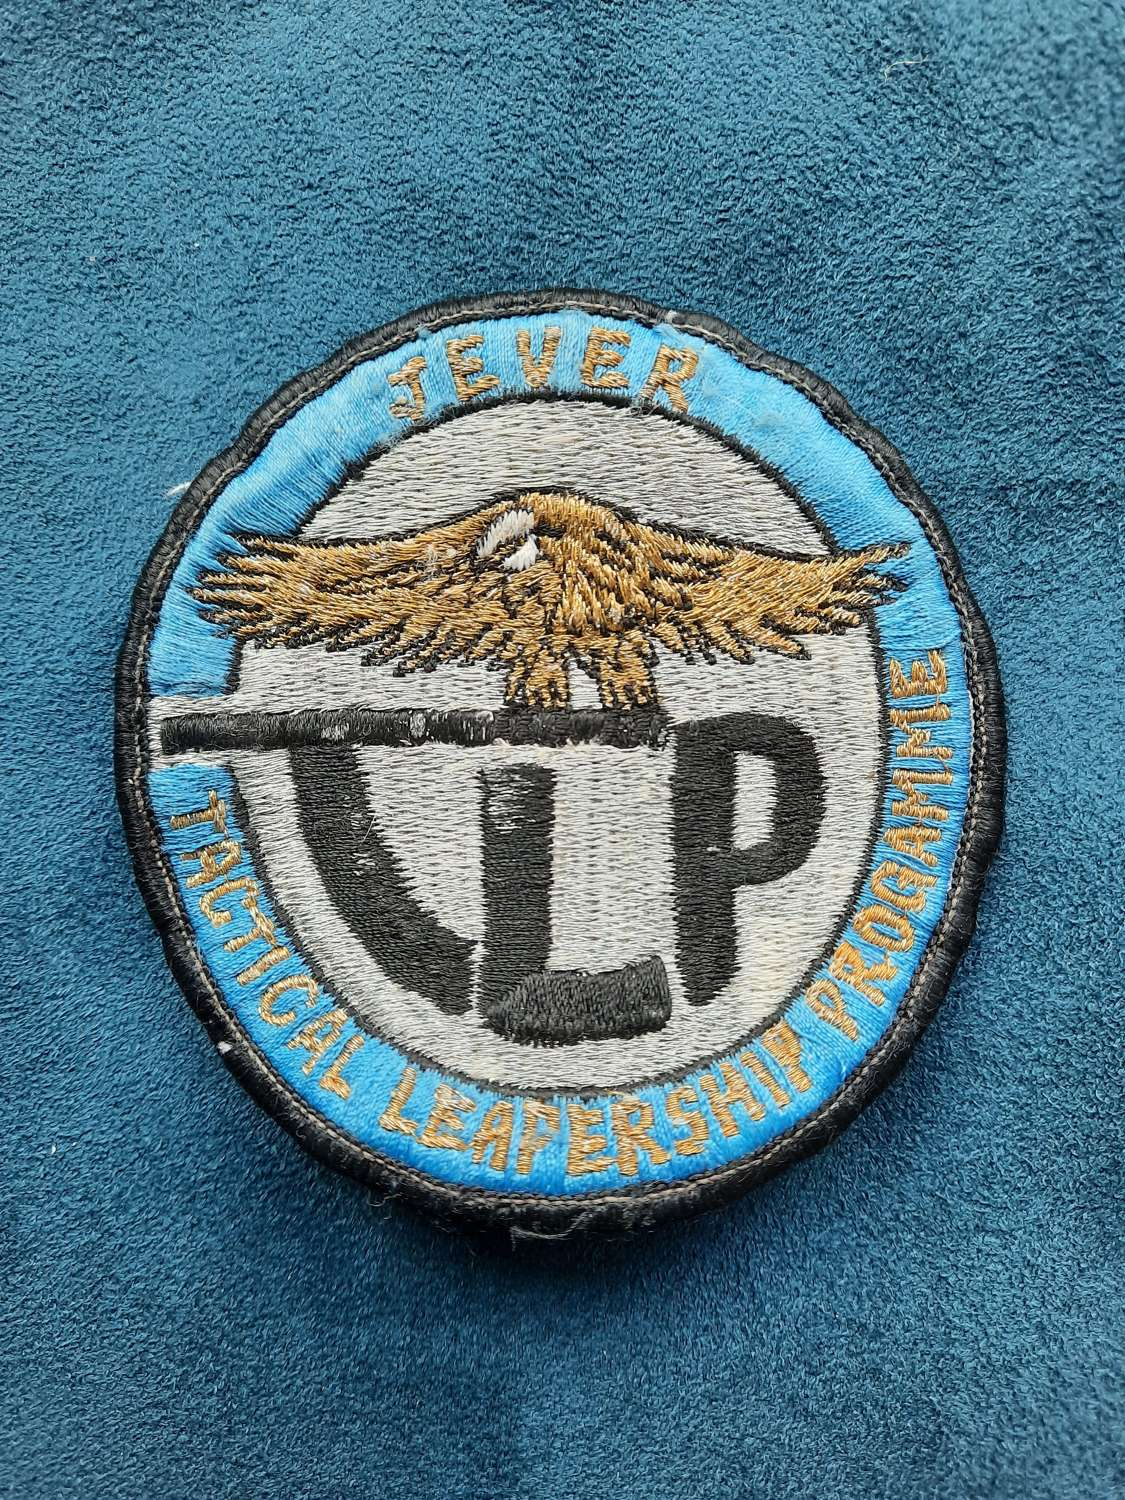 Tactical Leadership Programme Patch